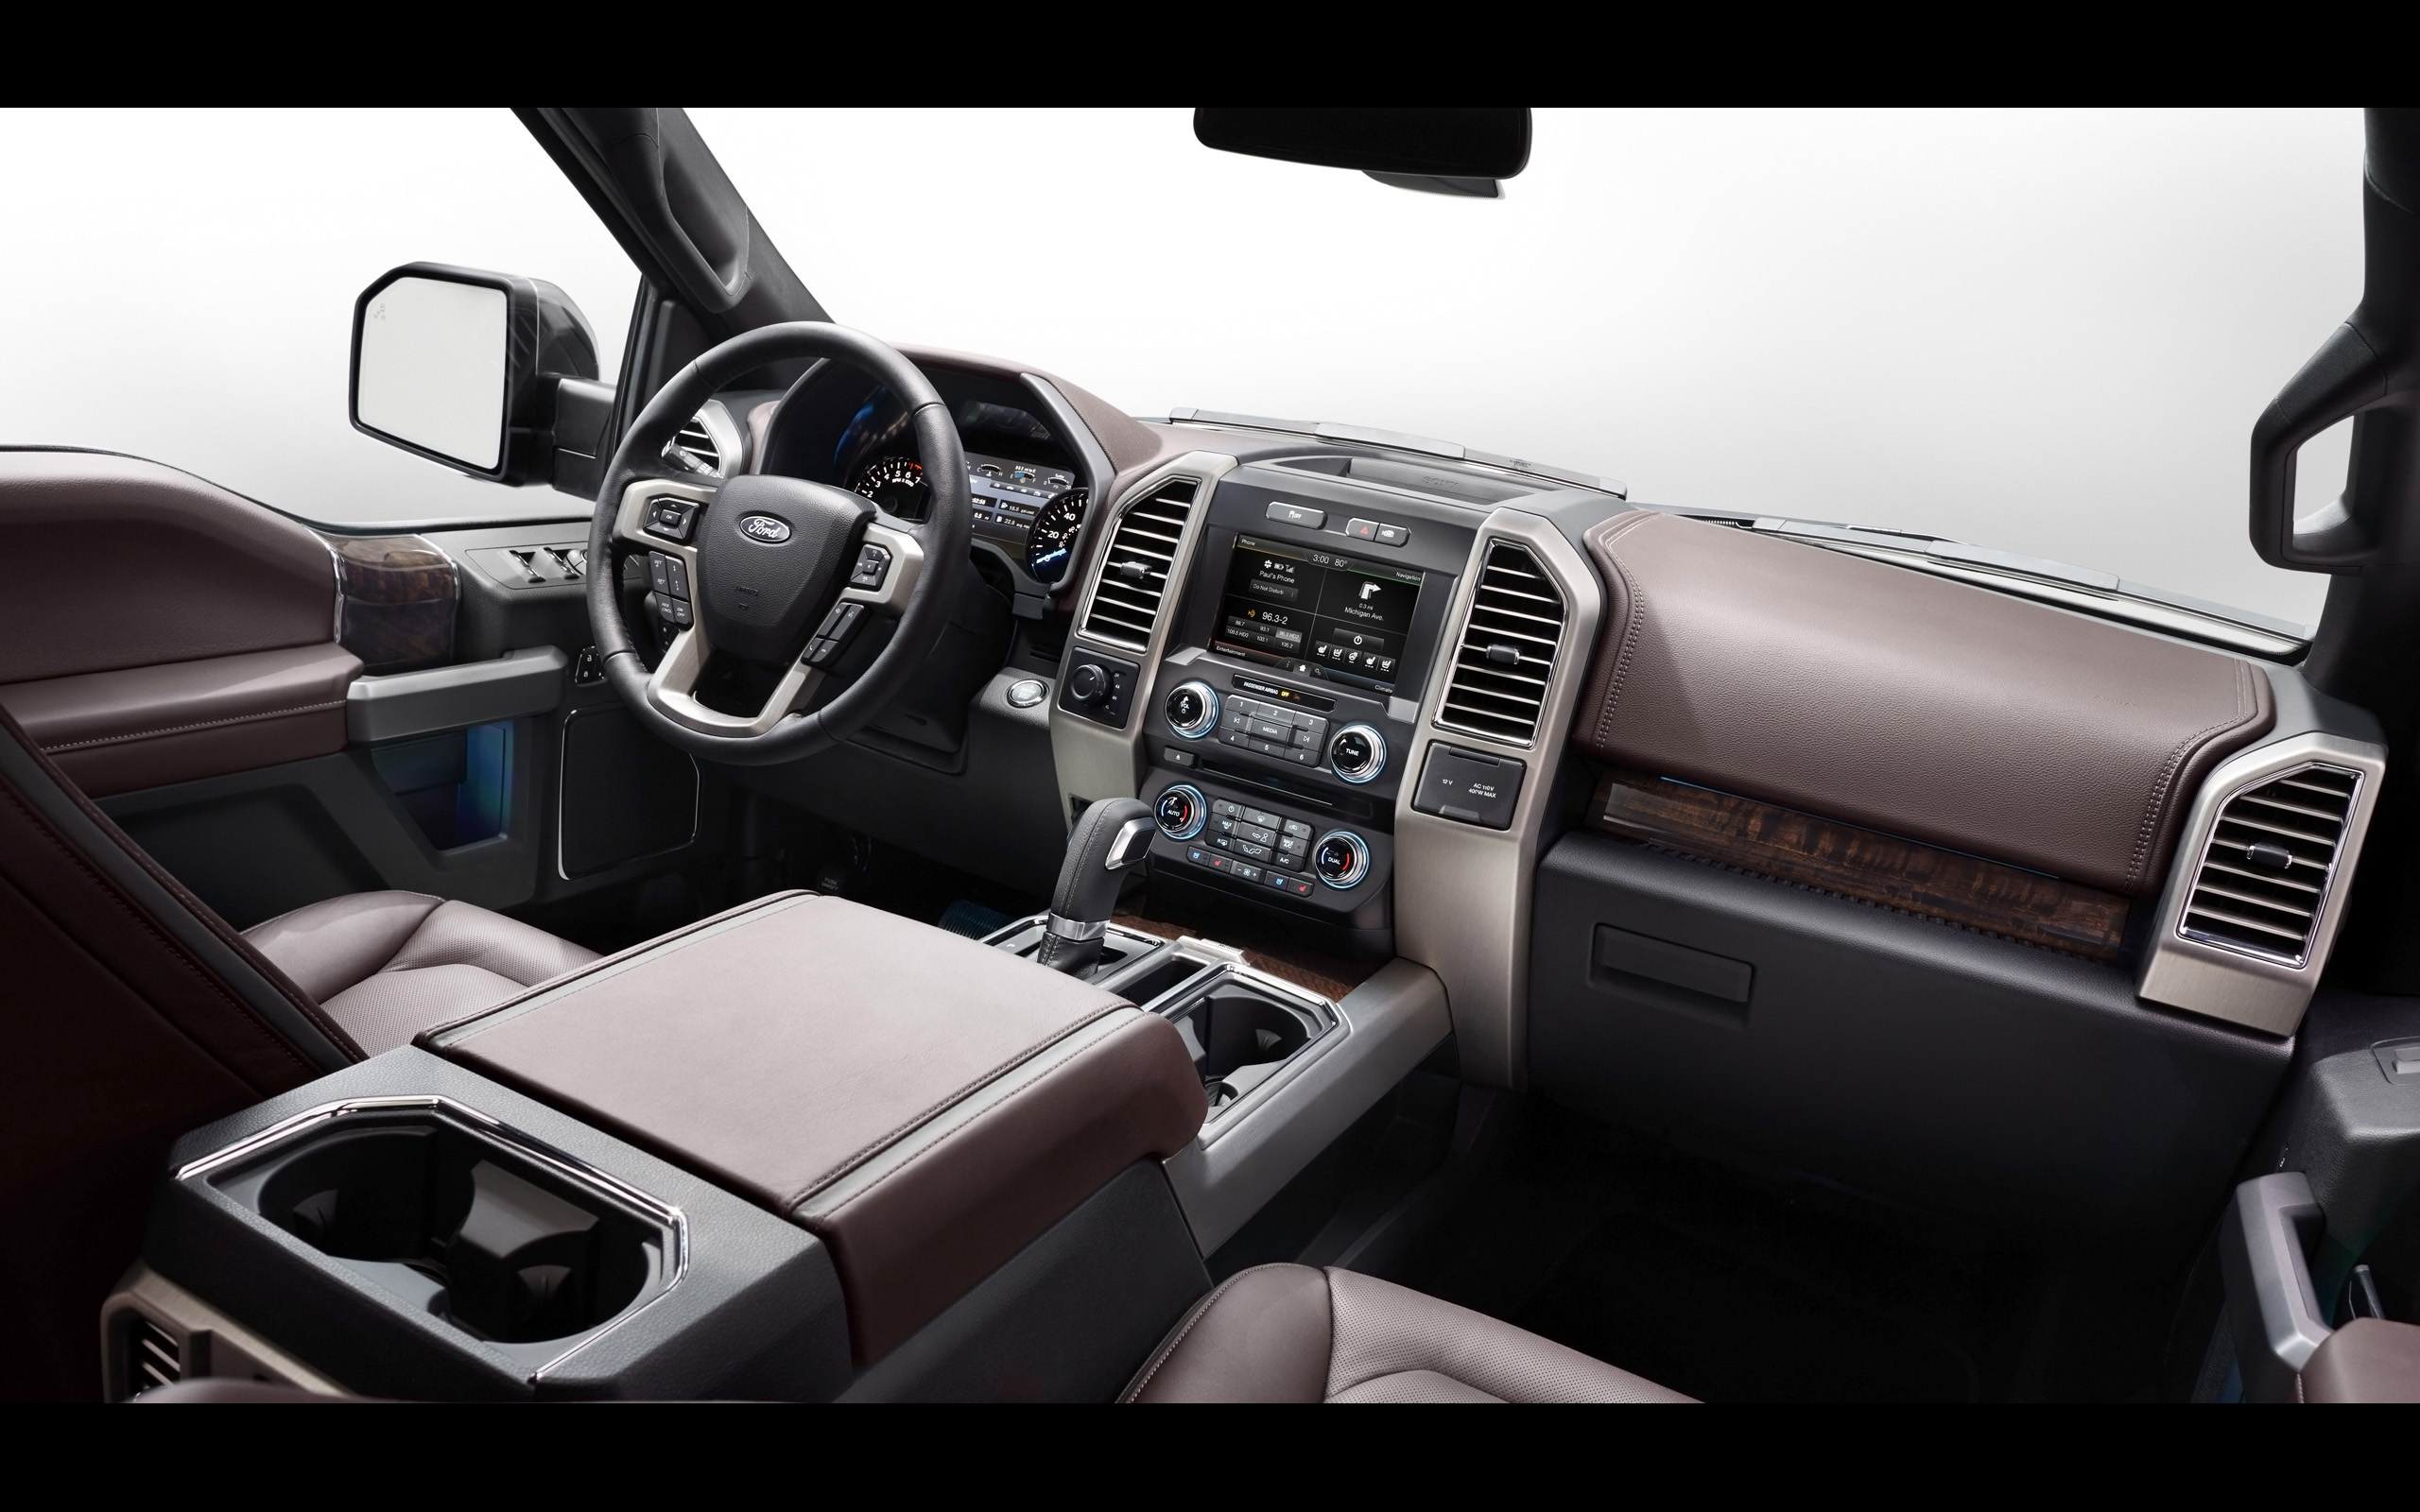 2015 Ford F 150 Platinum pickup interior g wallpaper background 2560x1600